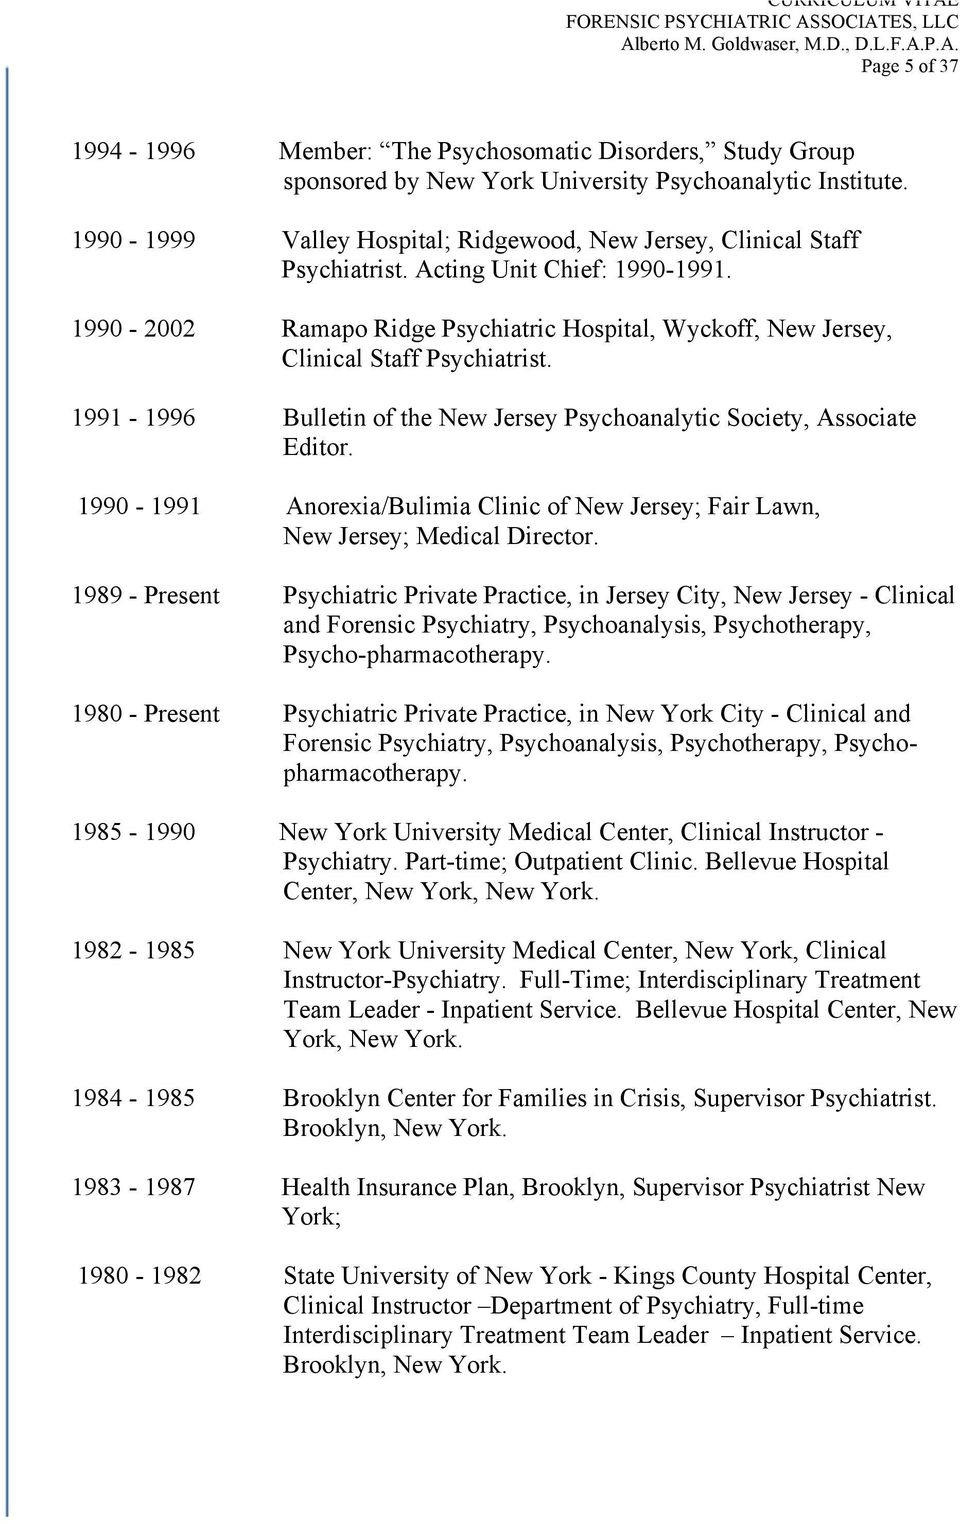 1990-2002 Ramapo Ridge Psychiatric Hospital, Wyckoff, New Jersey, Clinical Staff Psychiatrist. 1991-1996 Bulletin of the New Jersey Psychoanalytic Society, Associate Editor.